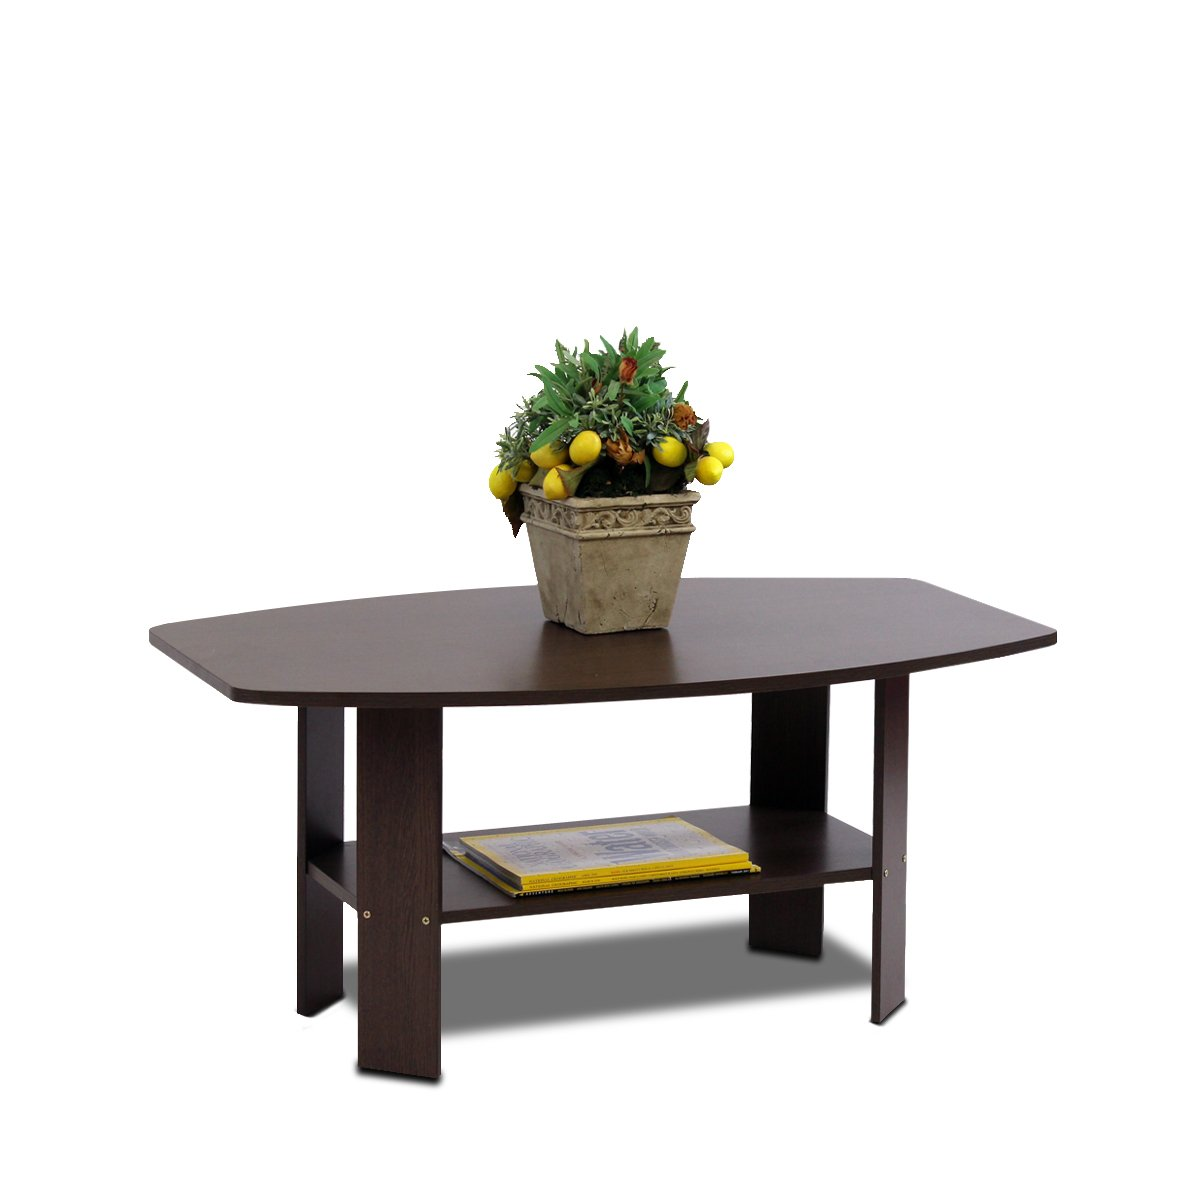 Furinno 11179DBR Simple Design Coffee Table